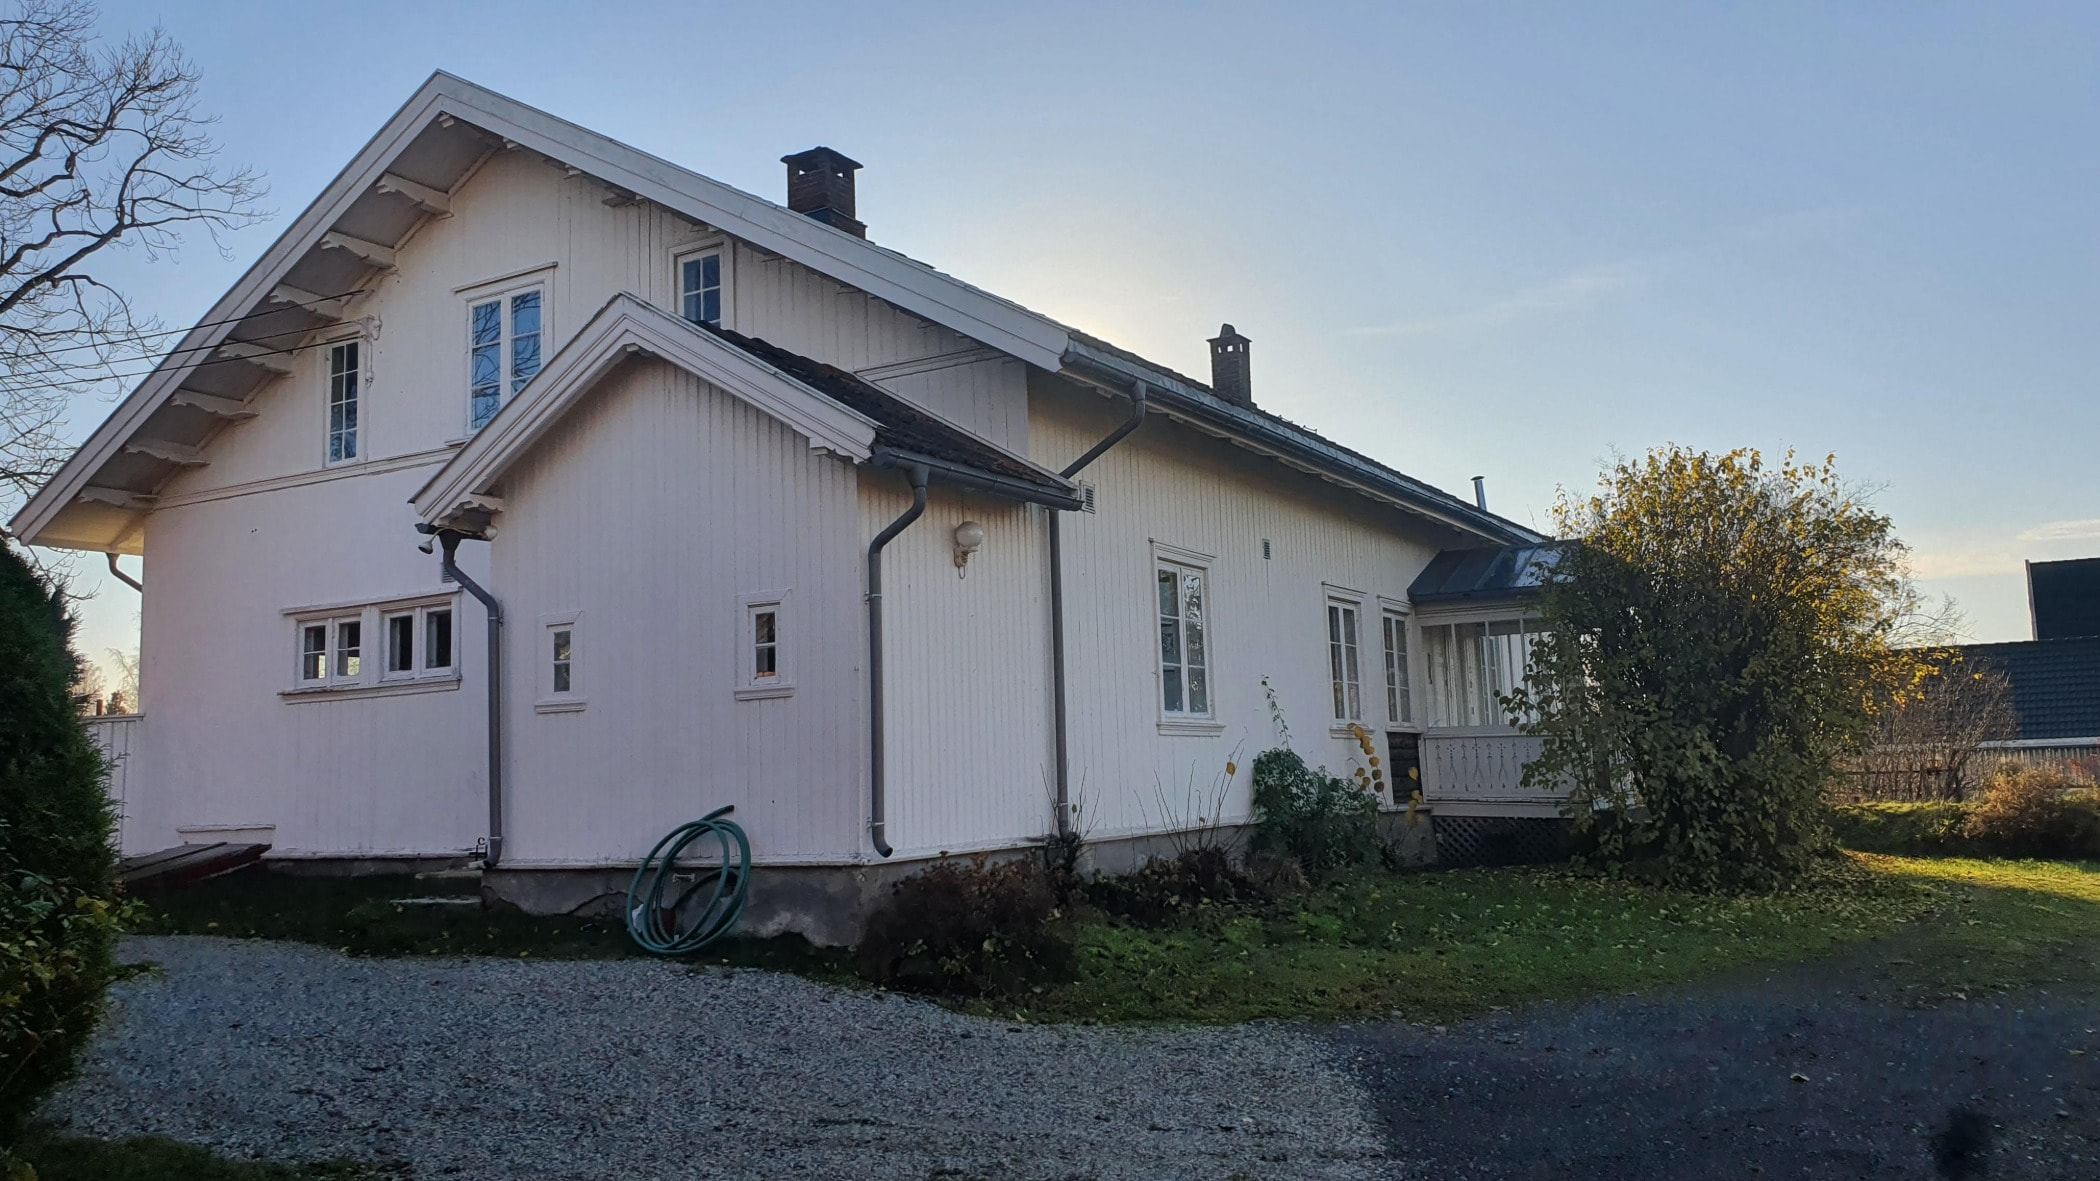 Real estate, Cottage, Building, Home, House, Property